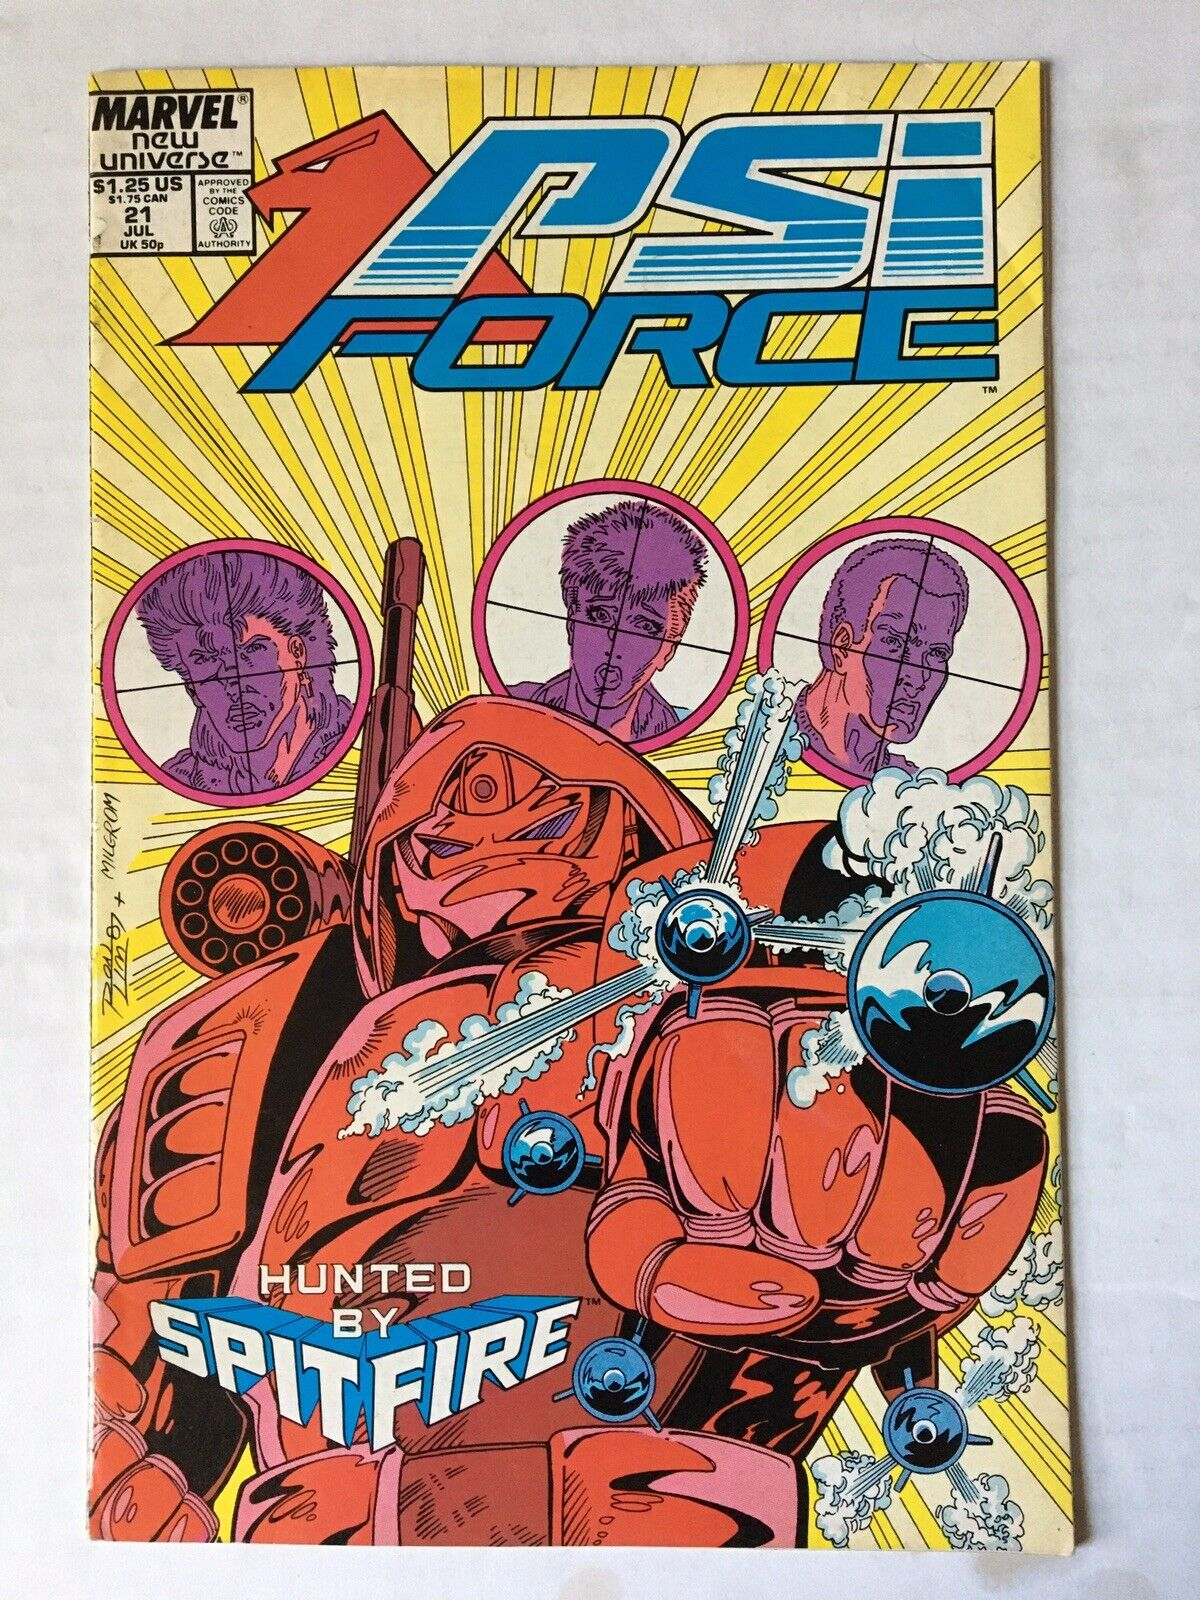 Spitfire and the Troubleshooters #4 Jan 1987 Marvel Comic Book VGFN